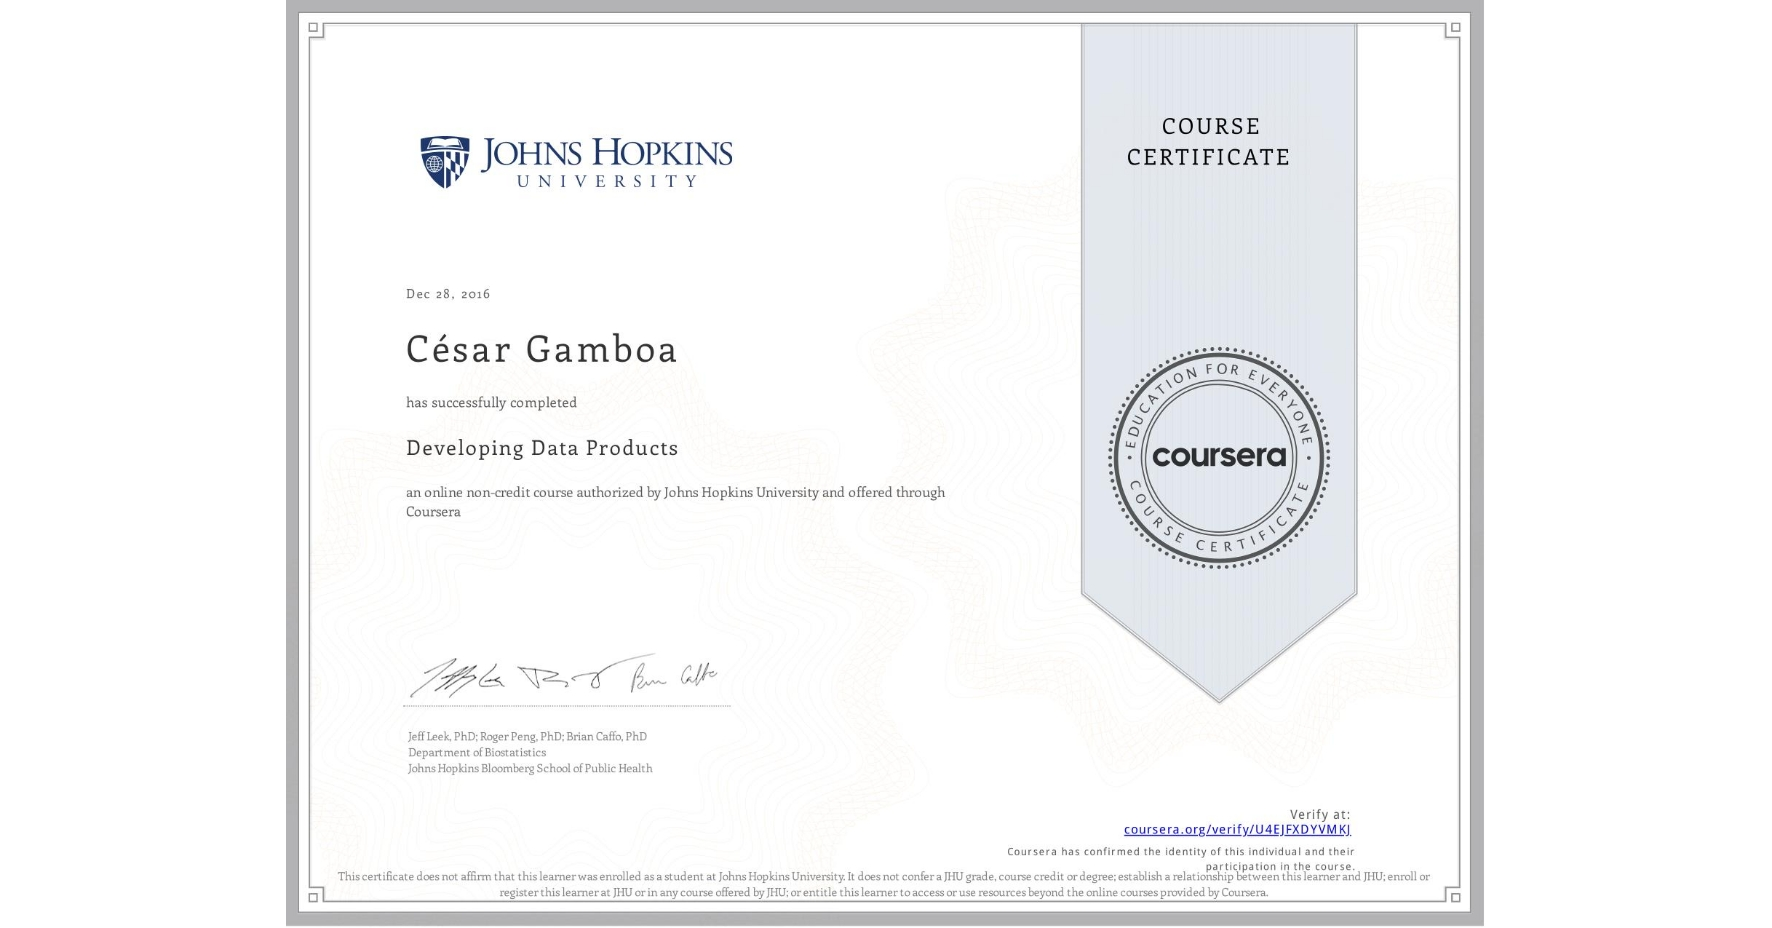 View certificate for César Gamboa, Developing Data Products, an online non-credit course authorized by Johns Hopkins University and offered through Coursera